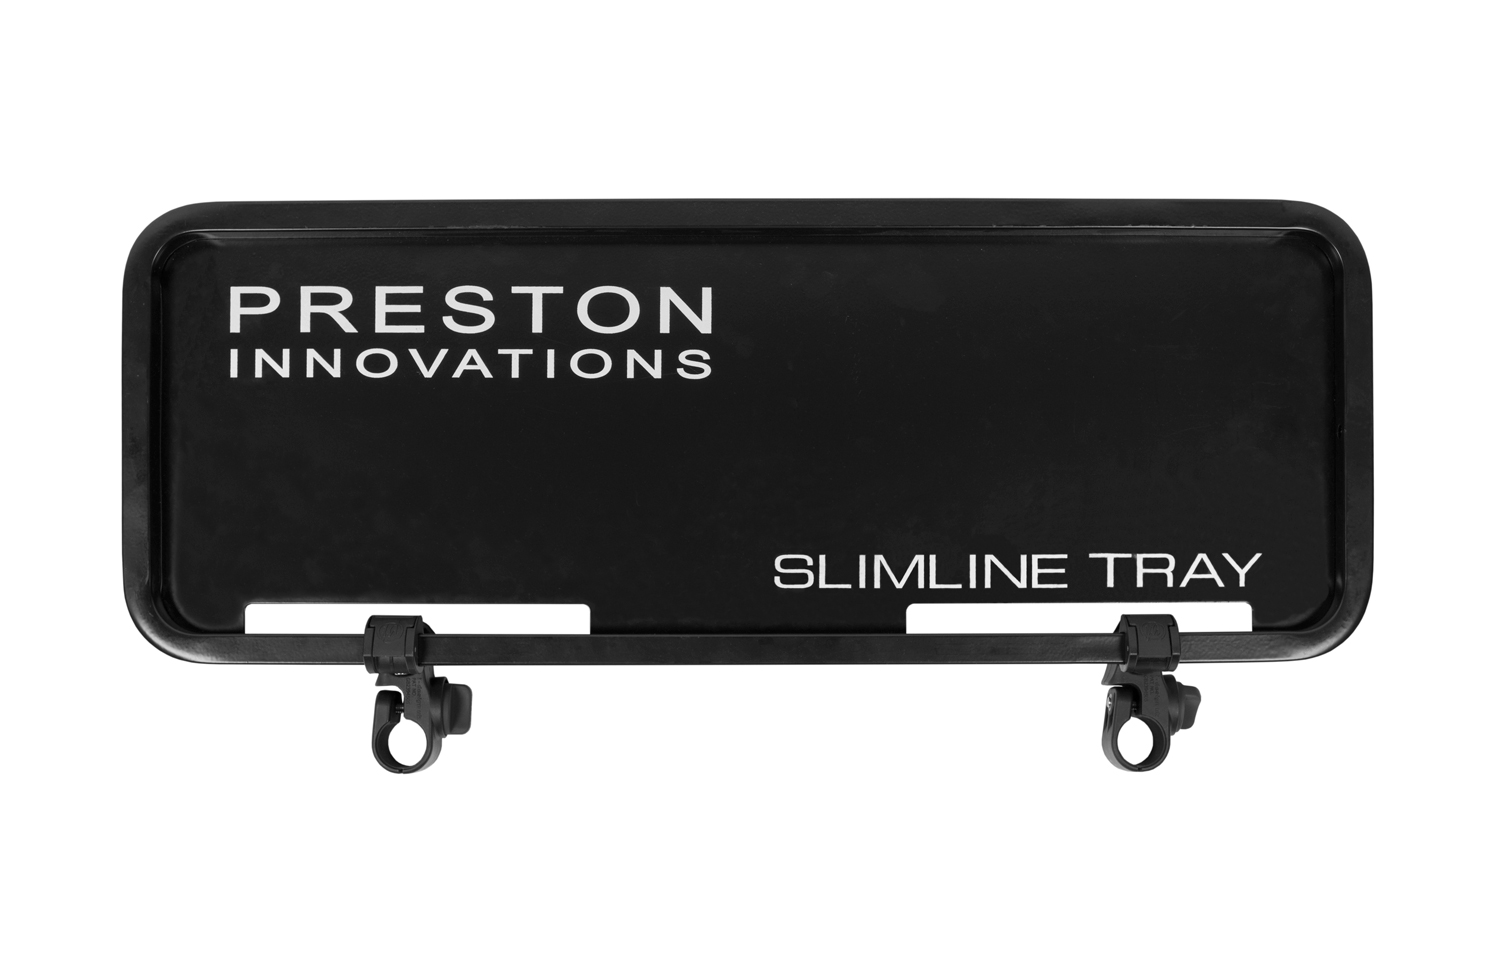 Preston Slimline Tray offbox 36